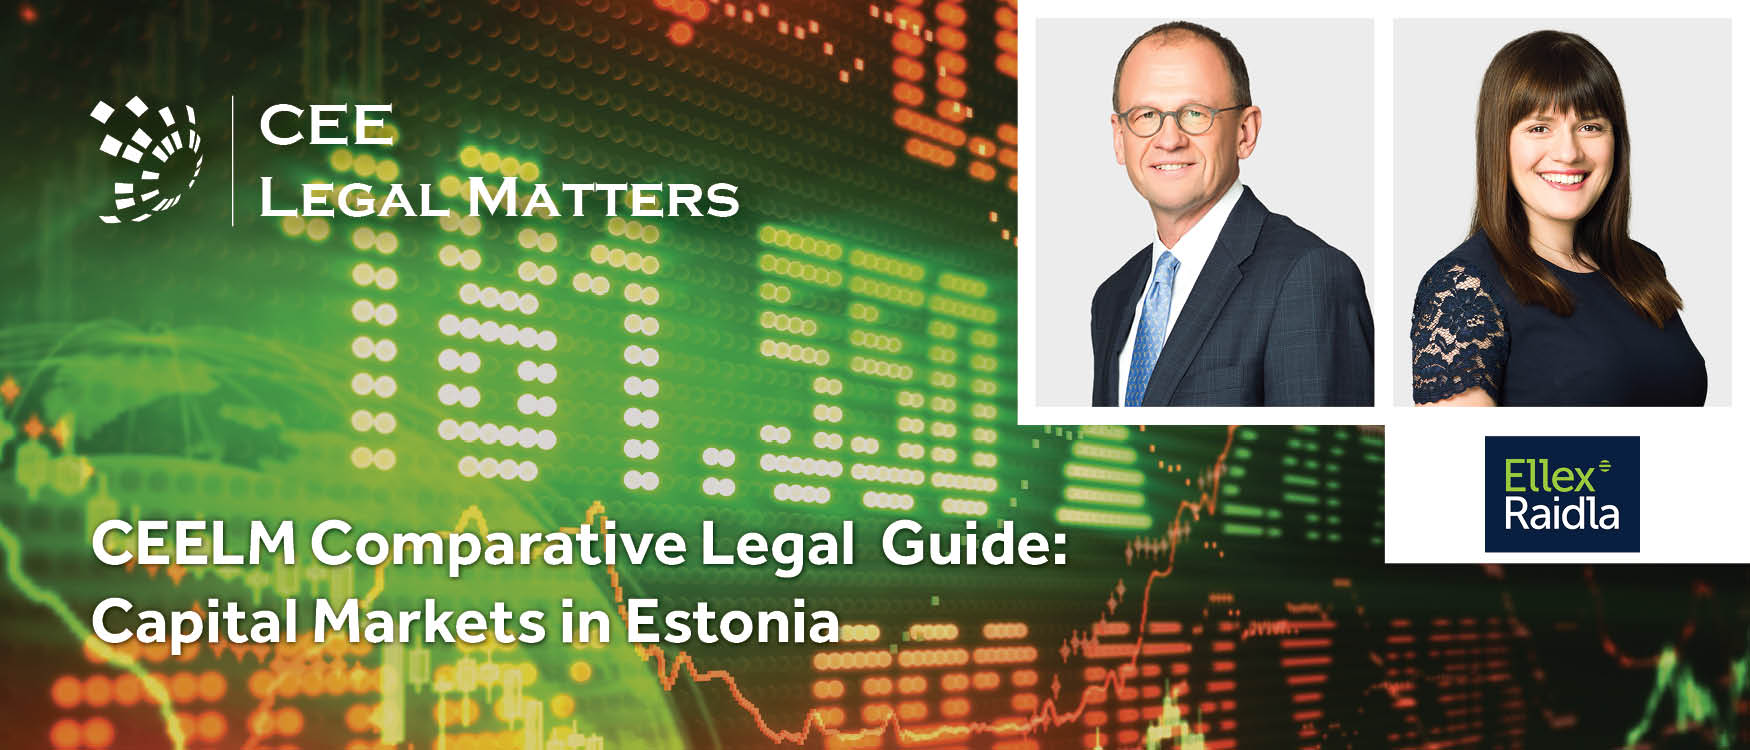 Capital Markets in Estonia